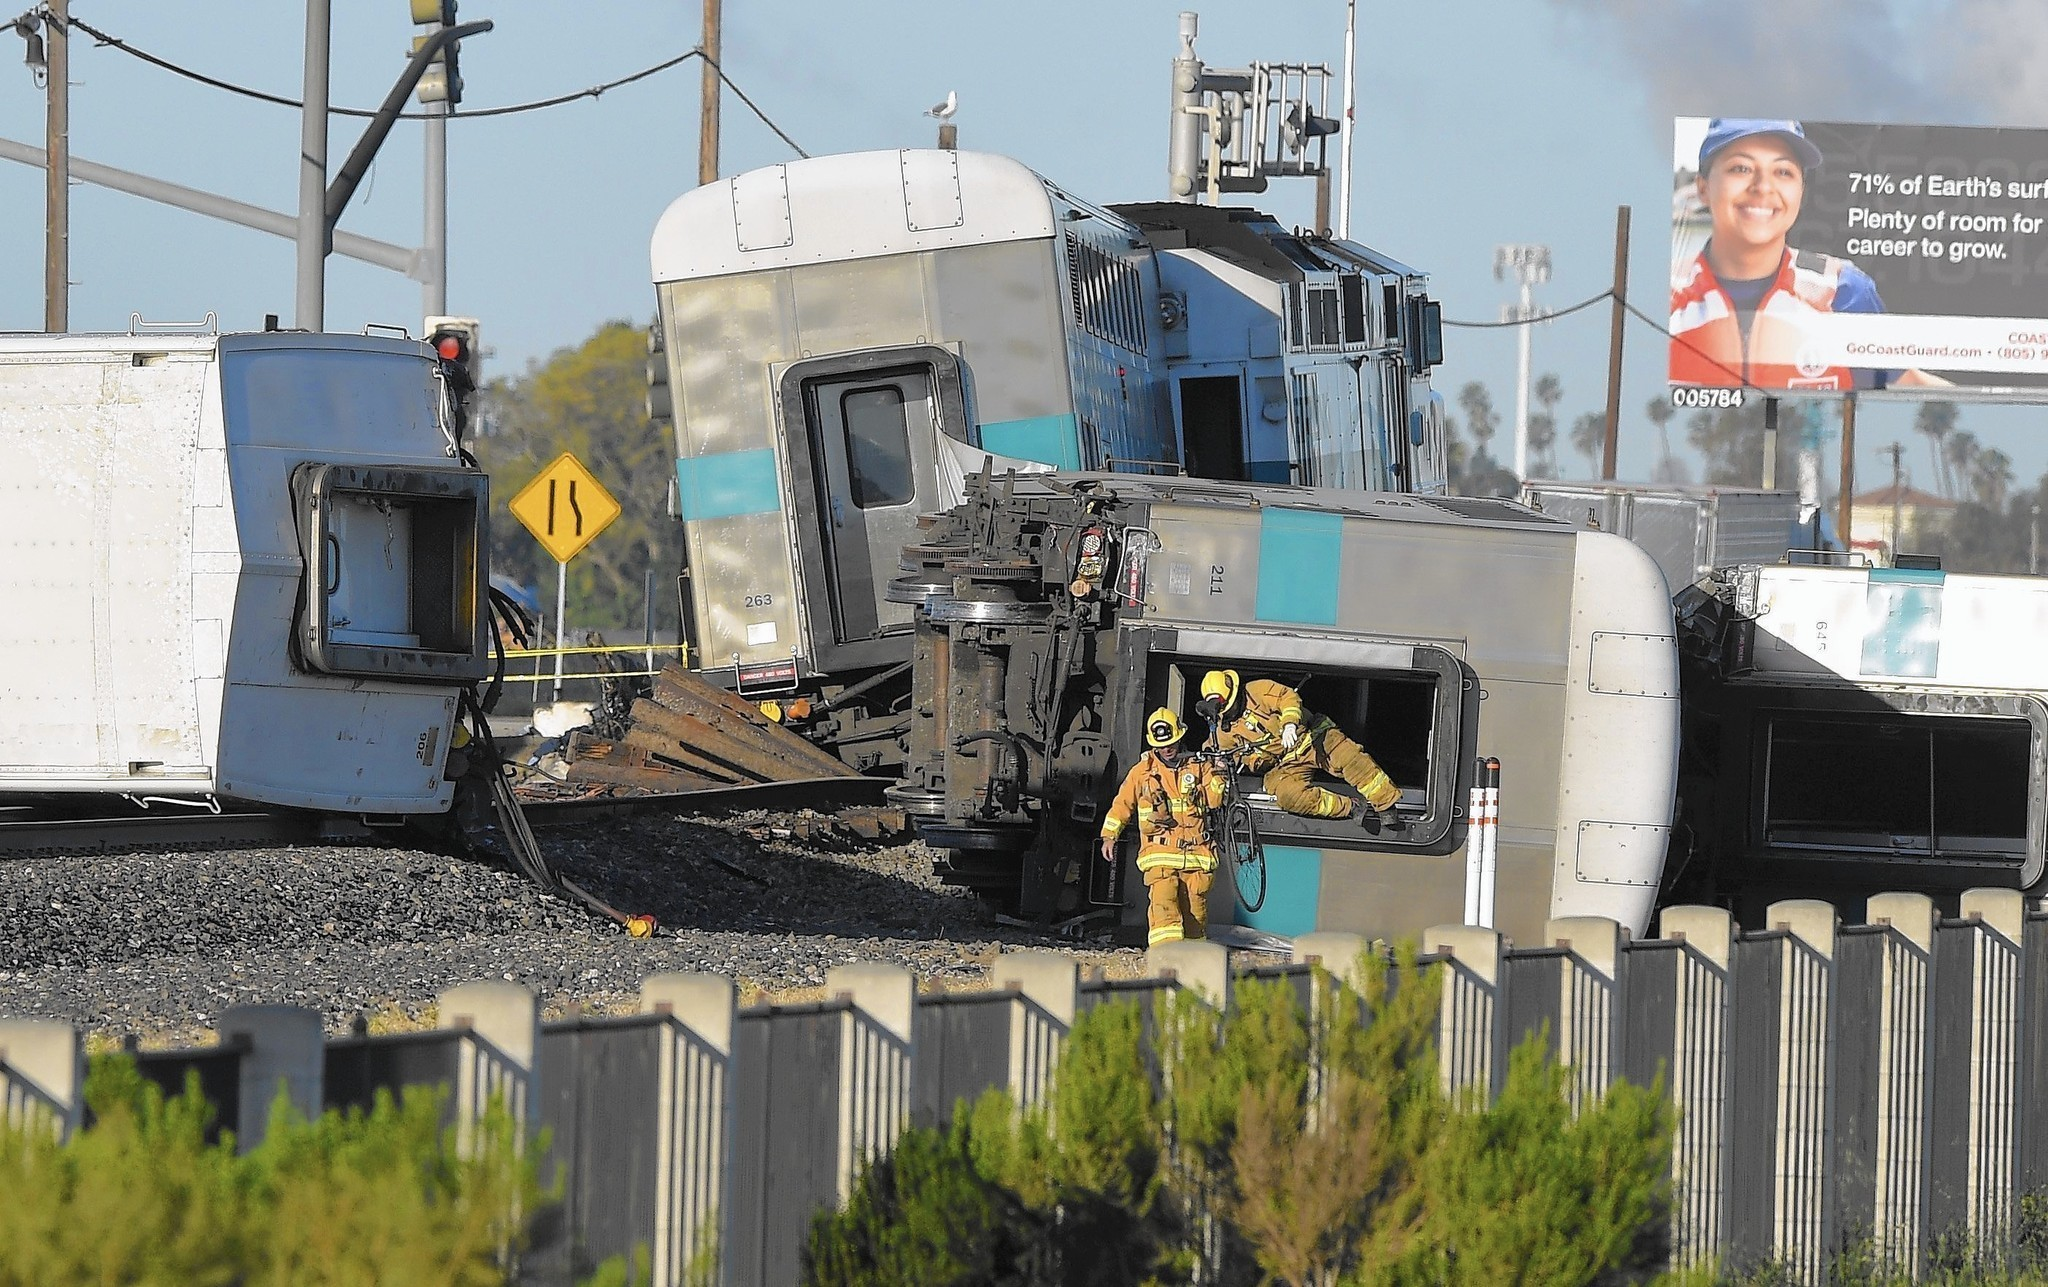 Spending on rail crossing safety upgrades varies widely across Southland